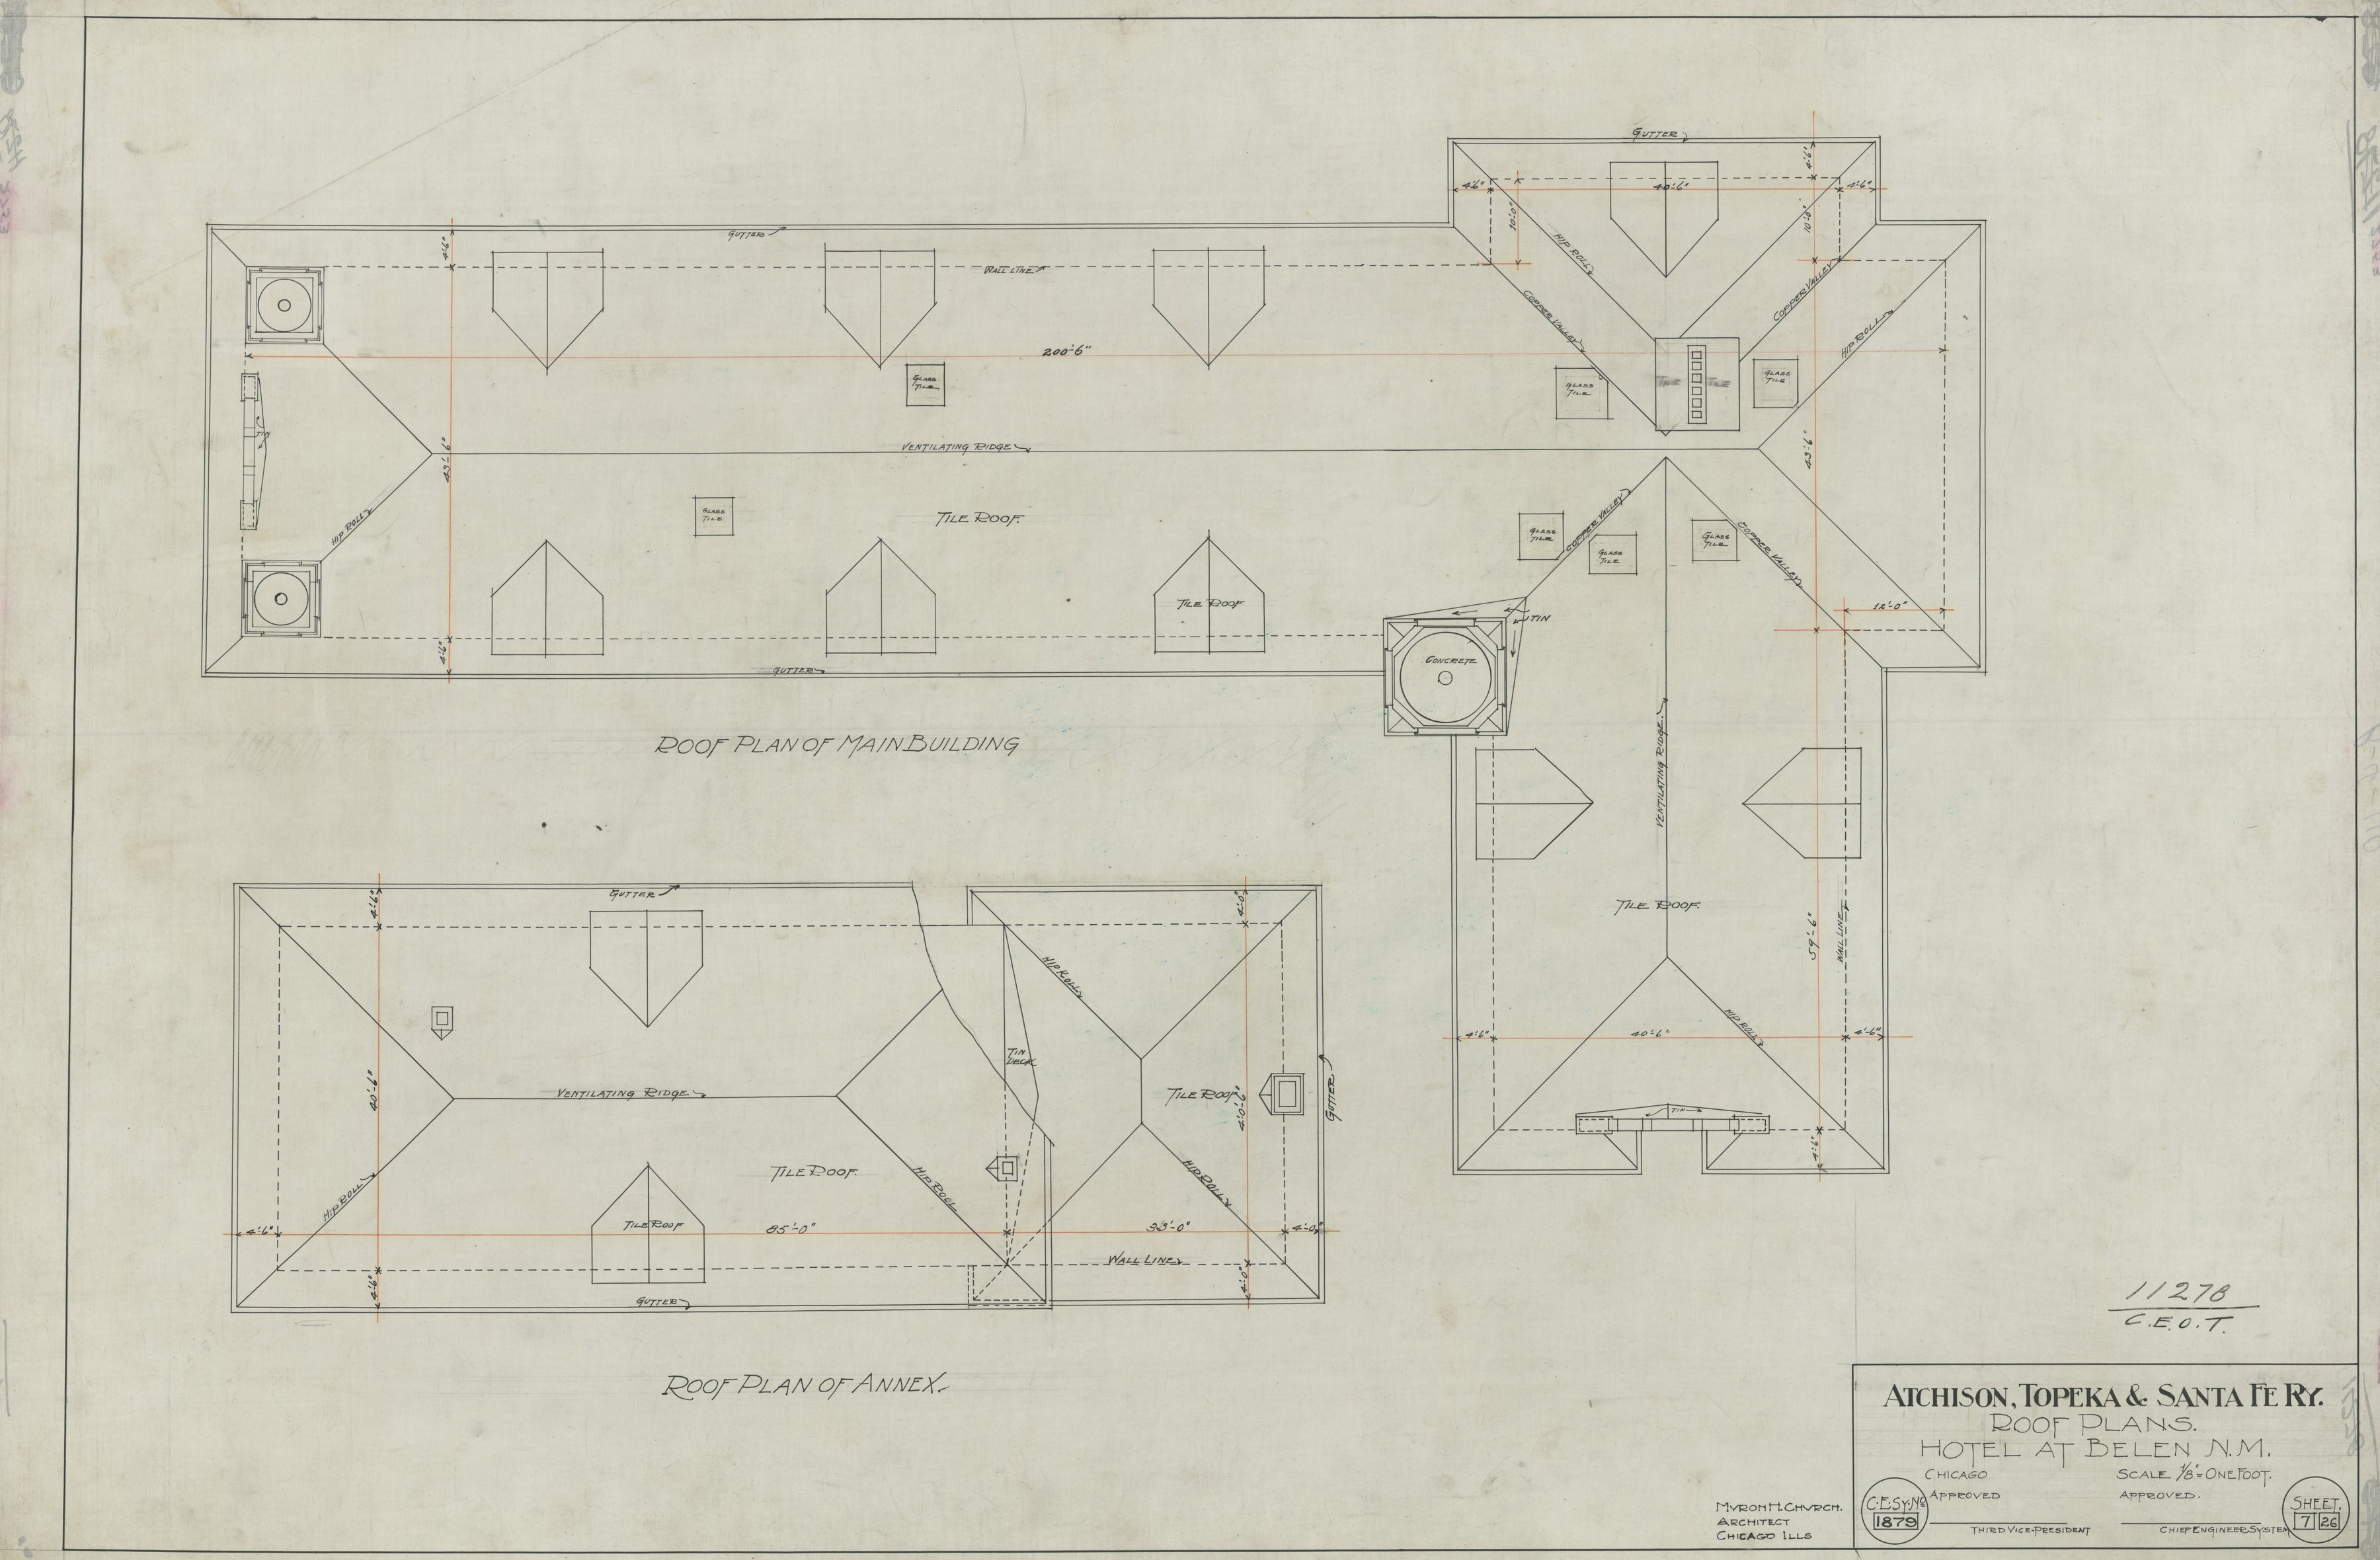 AT&SF Company hotel, Belen, New Mexico - Roof Plan of Annex, 1879